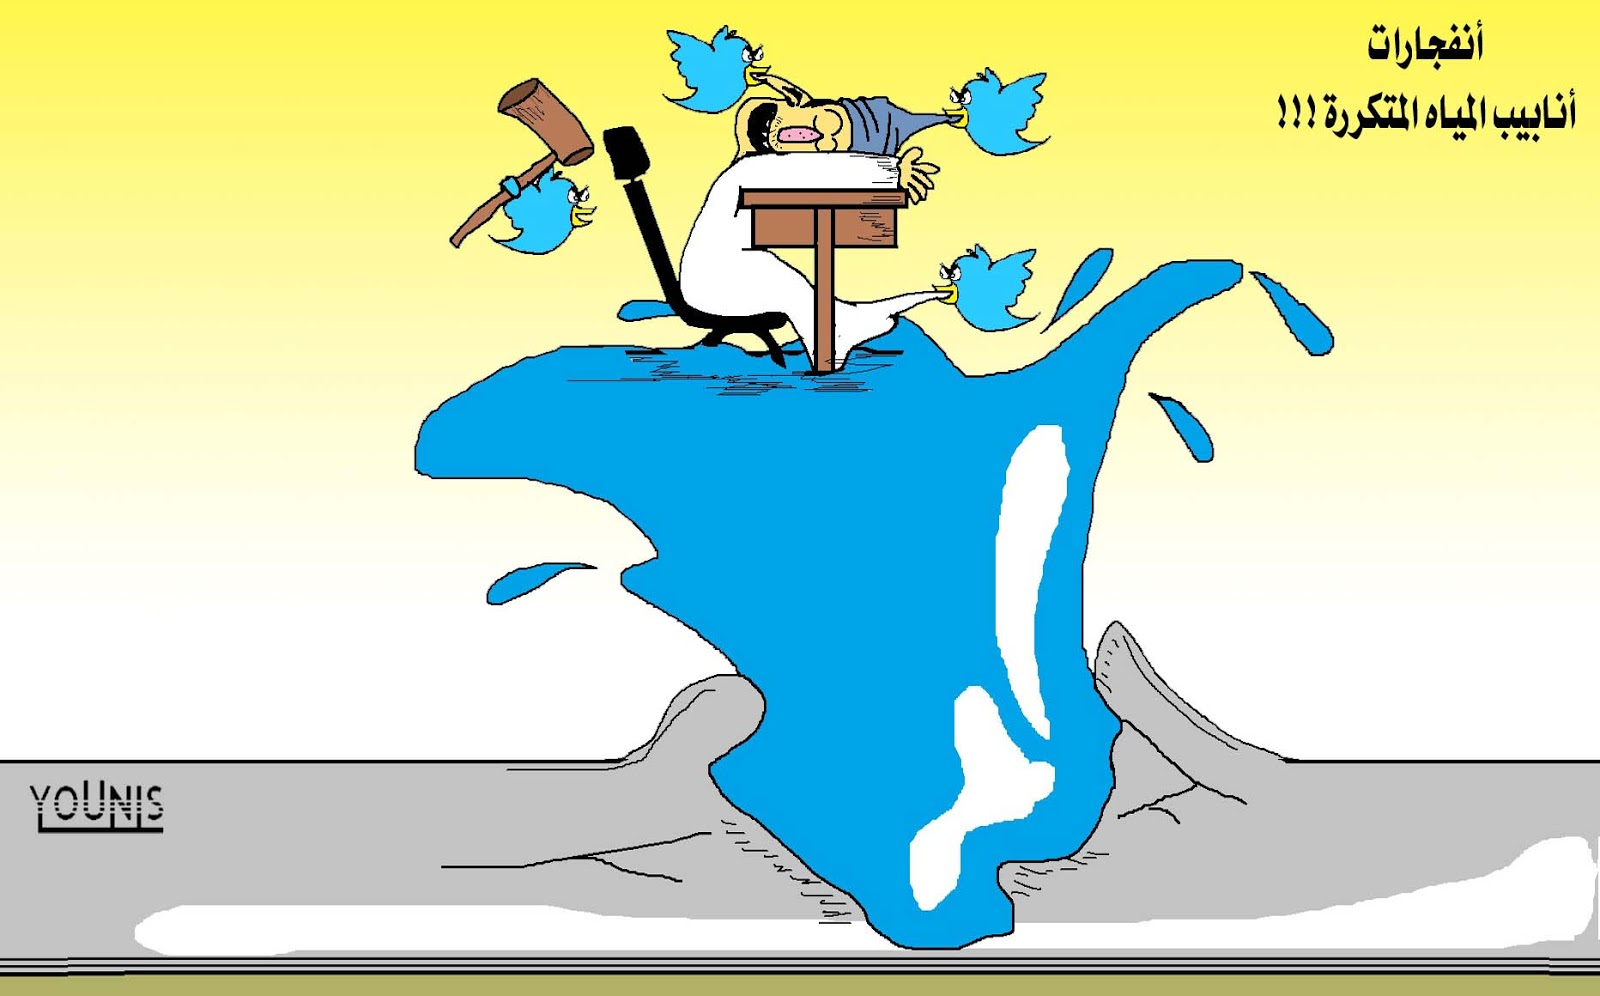 Oman Coast: Cartoon jokes about repeated water 'outages' in Oman.